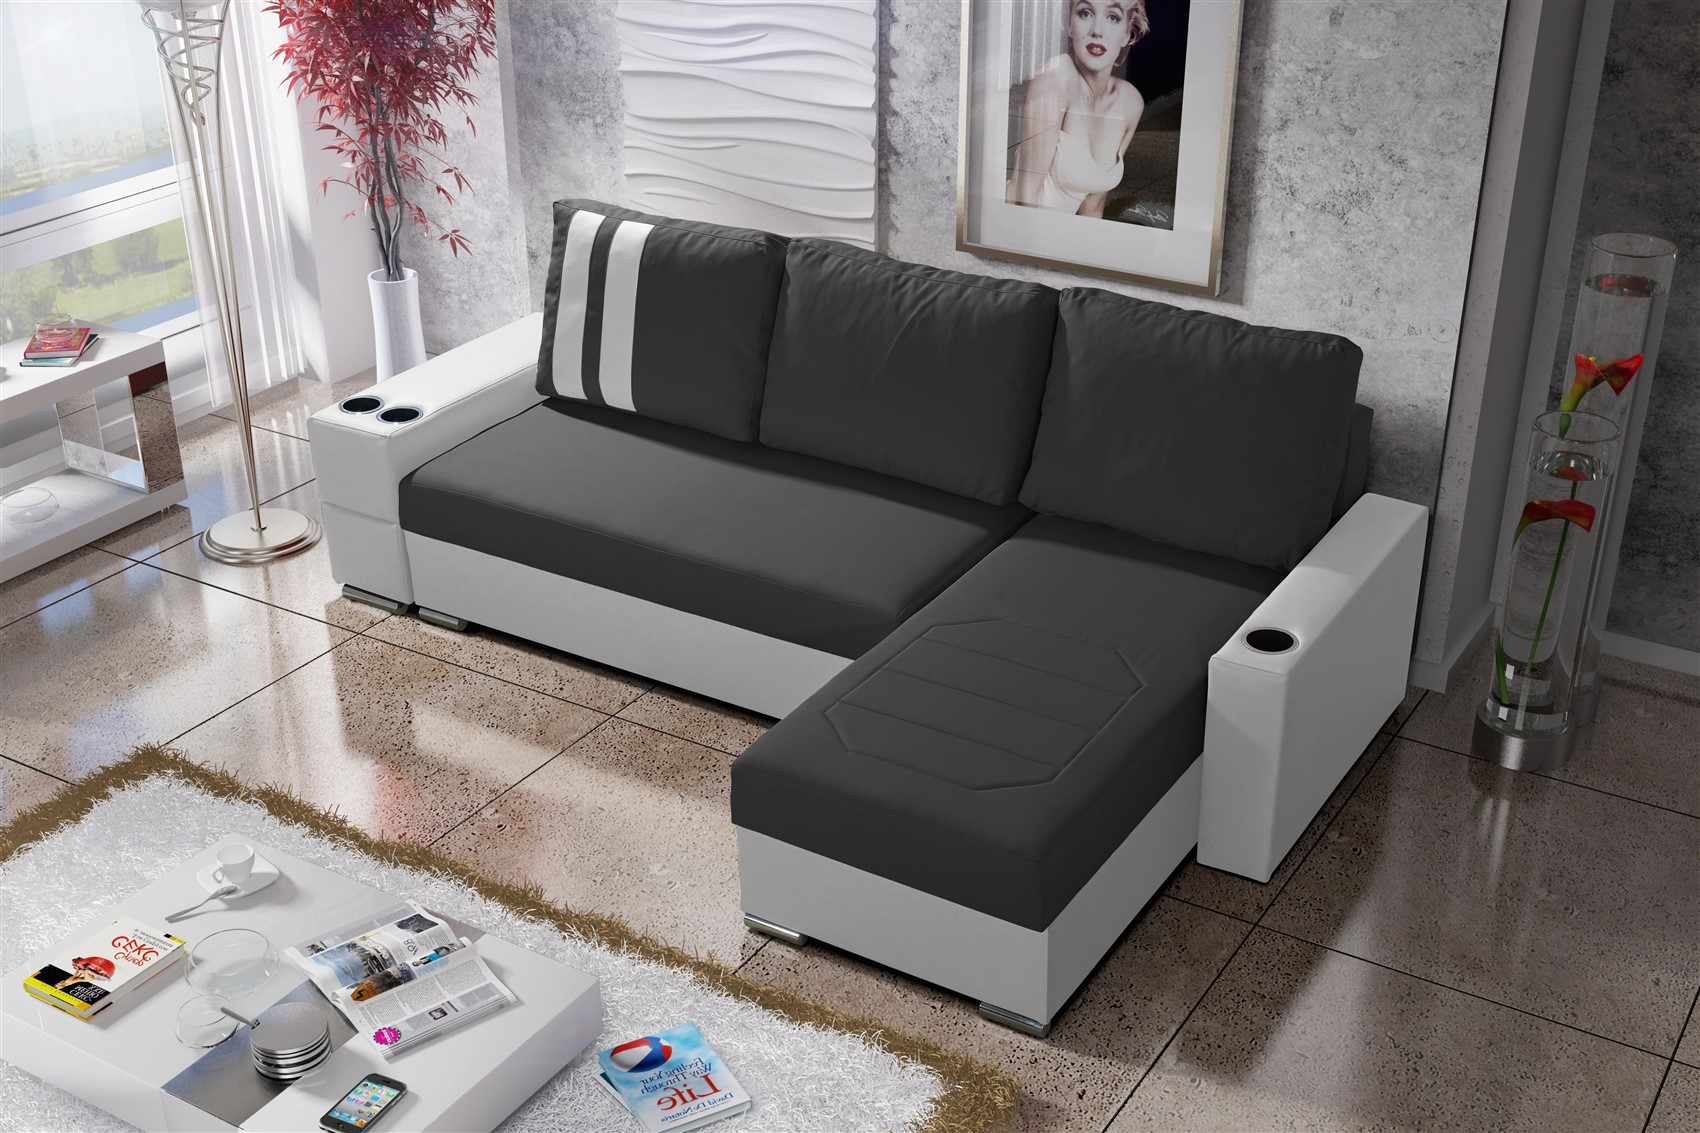 ecksofa sofa knox xl mit schlaffunktion weiss dunkelgrau otto rechts fun m bel. Black Bedroom Furniture Sets. Home Design Ideas